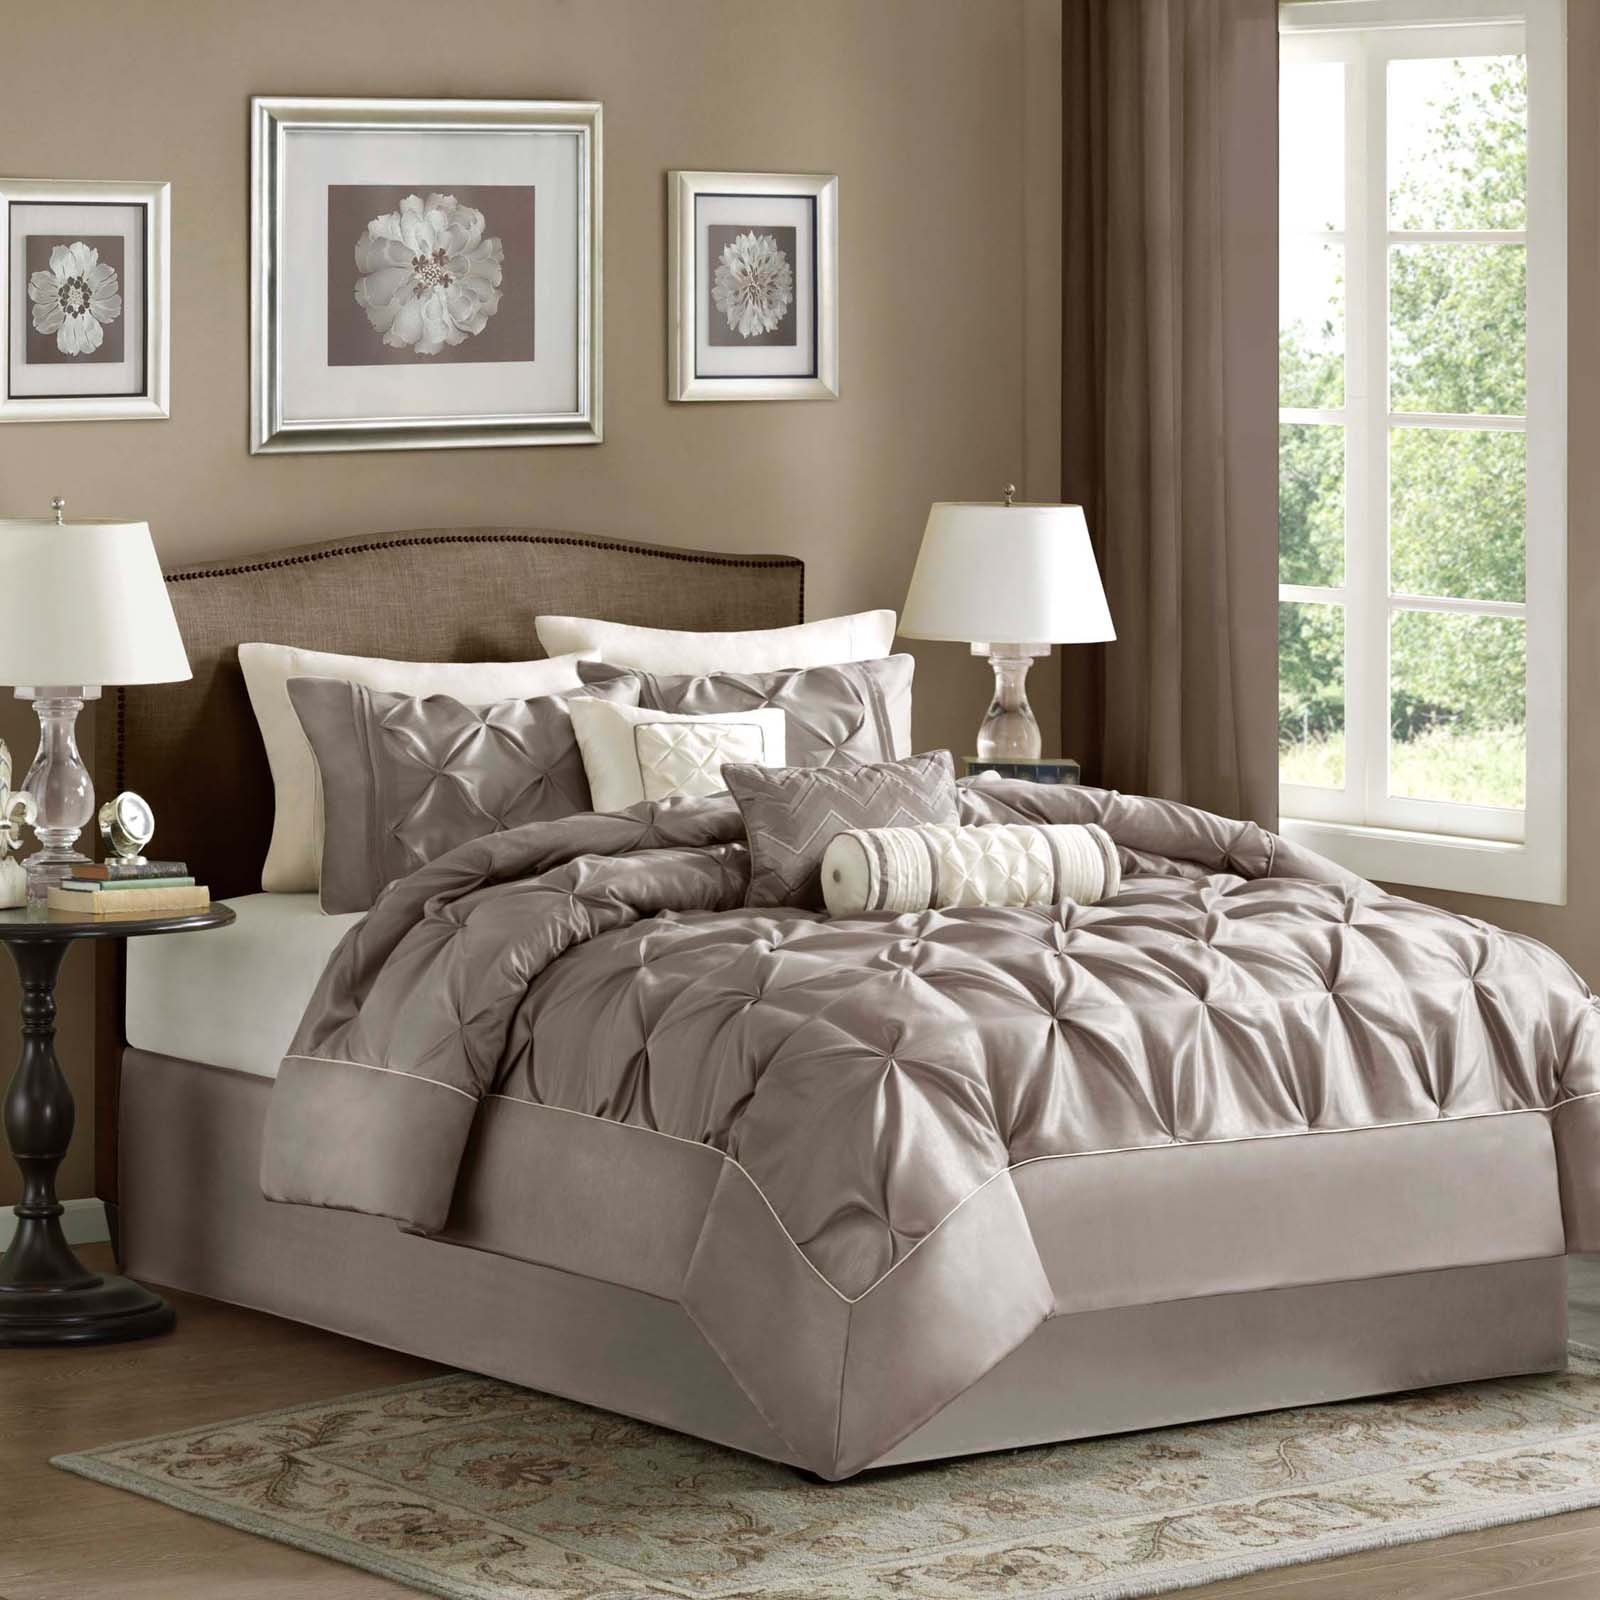 Inspiring Comforters Sets For Bedroom Design With Queen Comforter Sets